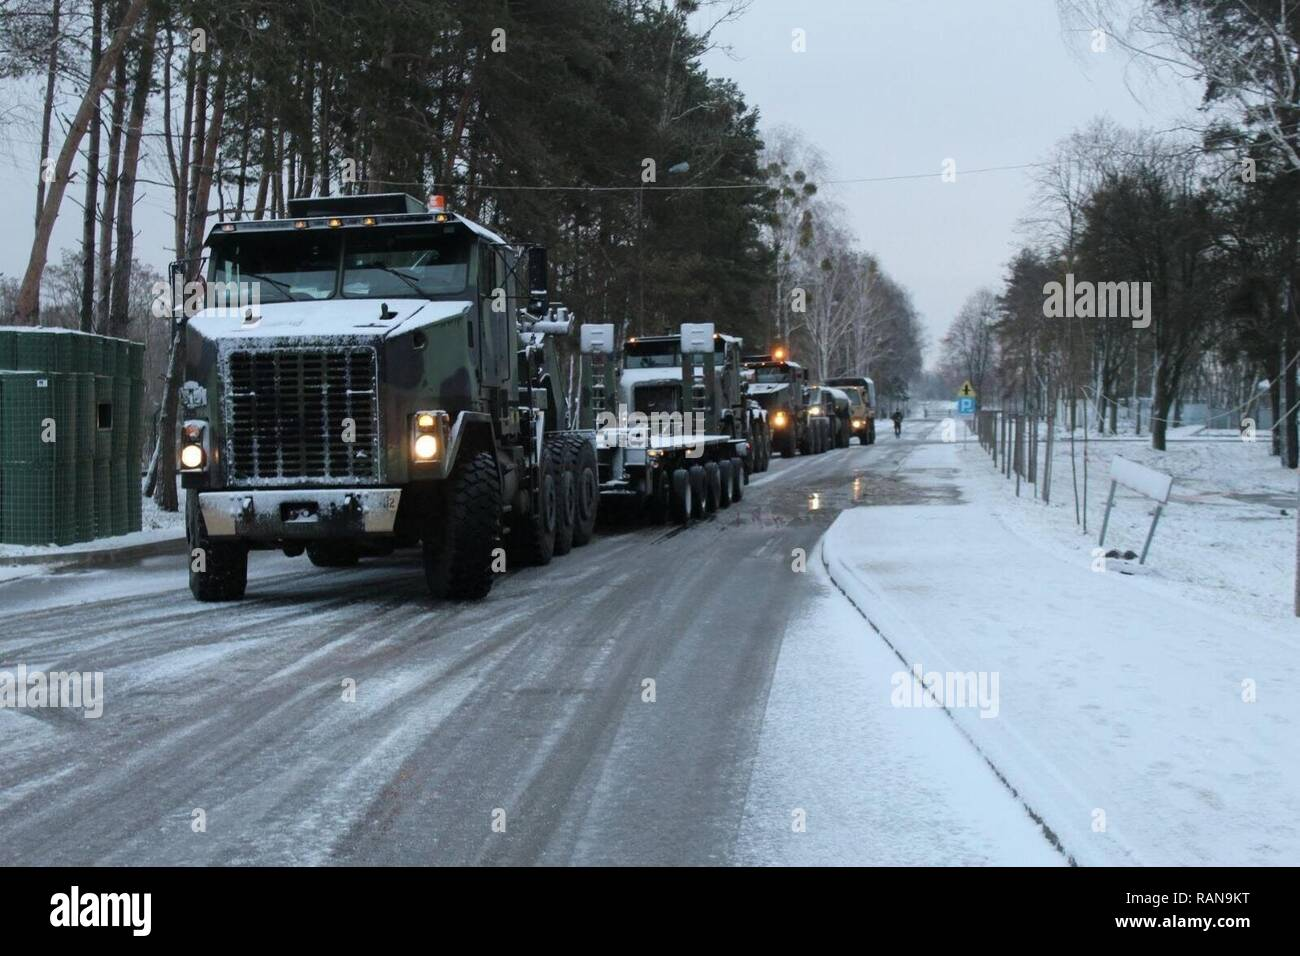 SOCHACZEW, Poland - Soldiers prepare for onward movement after resting overnight, Feb. 21, 2017. A heavy equipment transporter (HET) team, comprised of American and British HETs, verified main supply routes capable of moving an M1A2 Abrams tank across the Suwalki gap, the gateway to the Baltic countries, on a convoy that started Feb. 20 in Germany en route to Estonia. - Stock Image